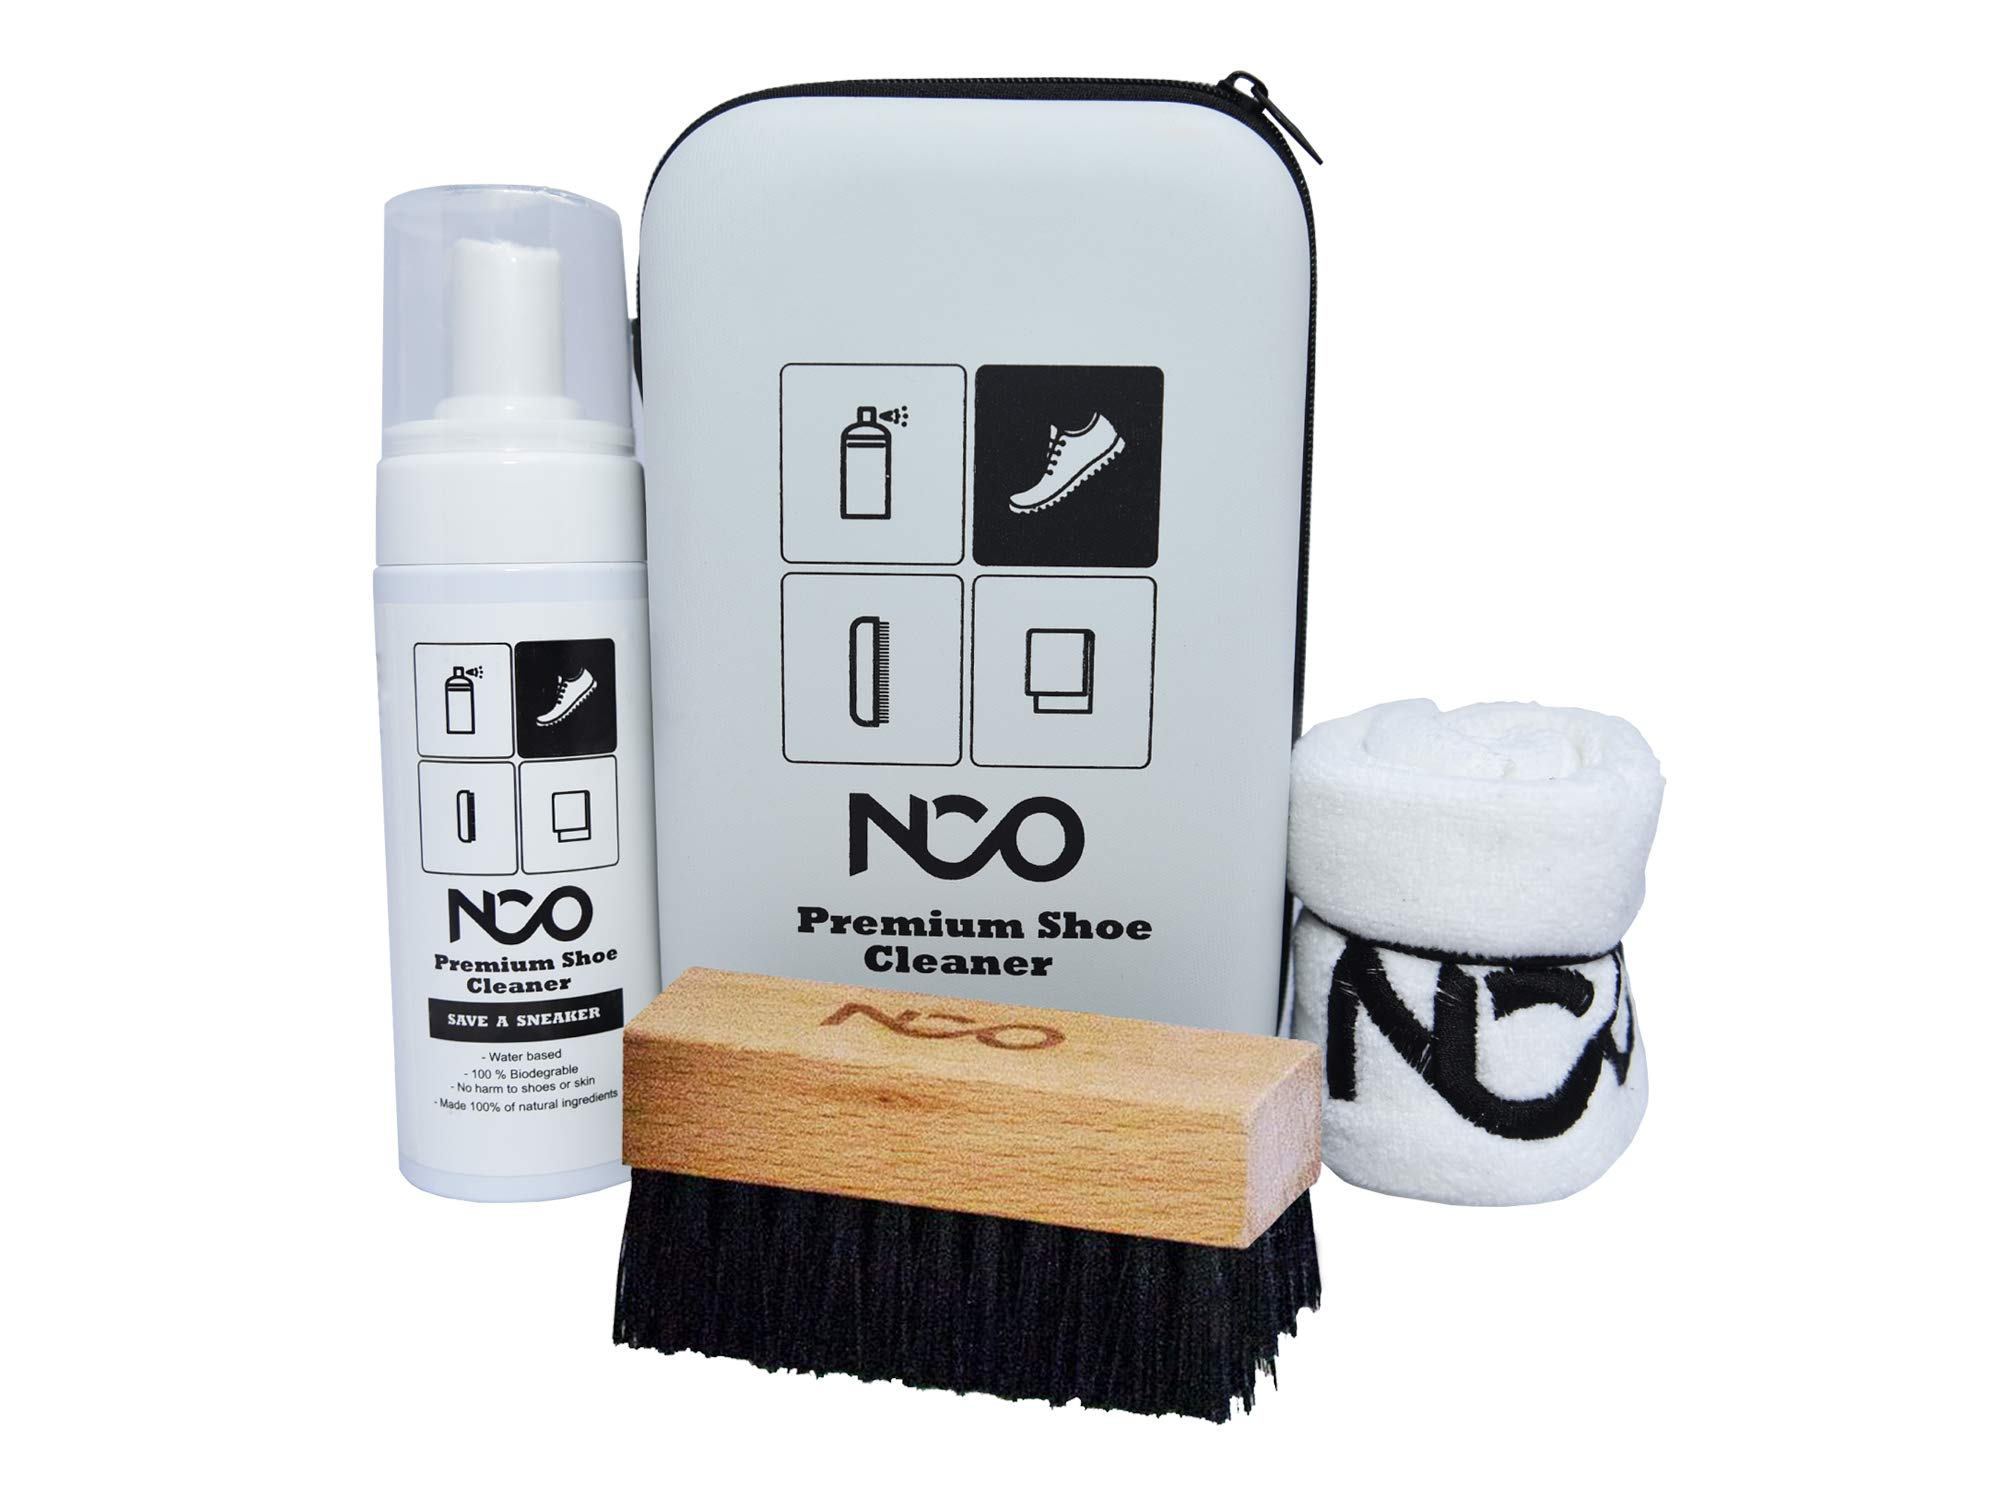 Premium Shoe Sneaker Cleaner Kit 150 ML Bottle Natural Foam Solution Set with Brush and Microfiber Towel Cloth Water Based Formula All in One Portable Kit